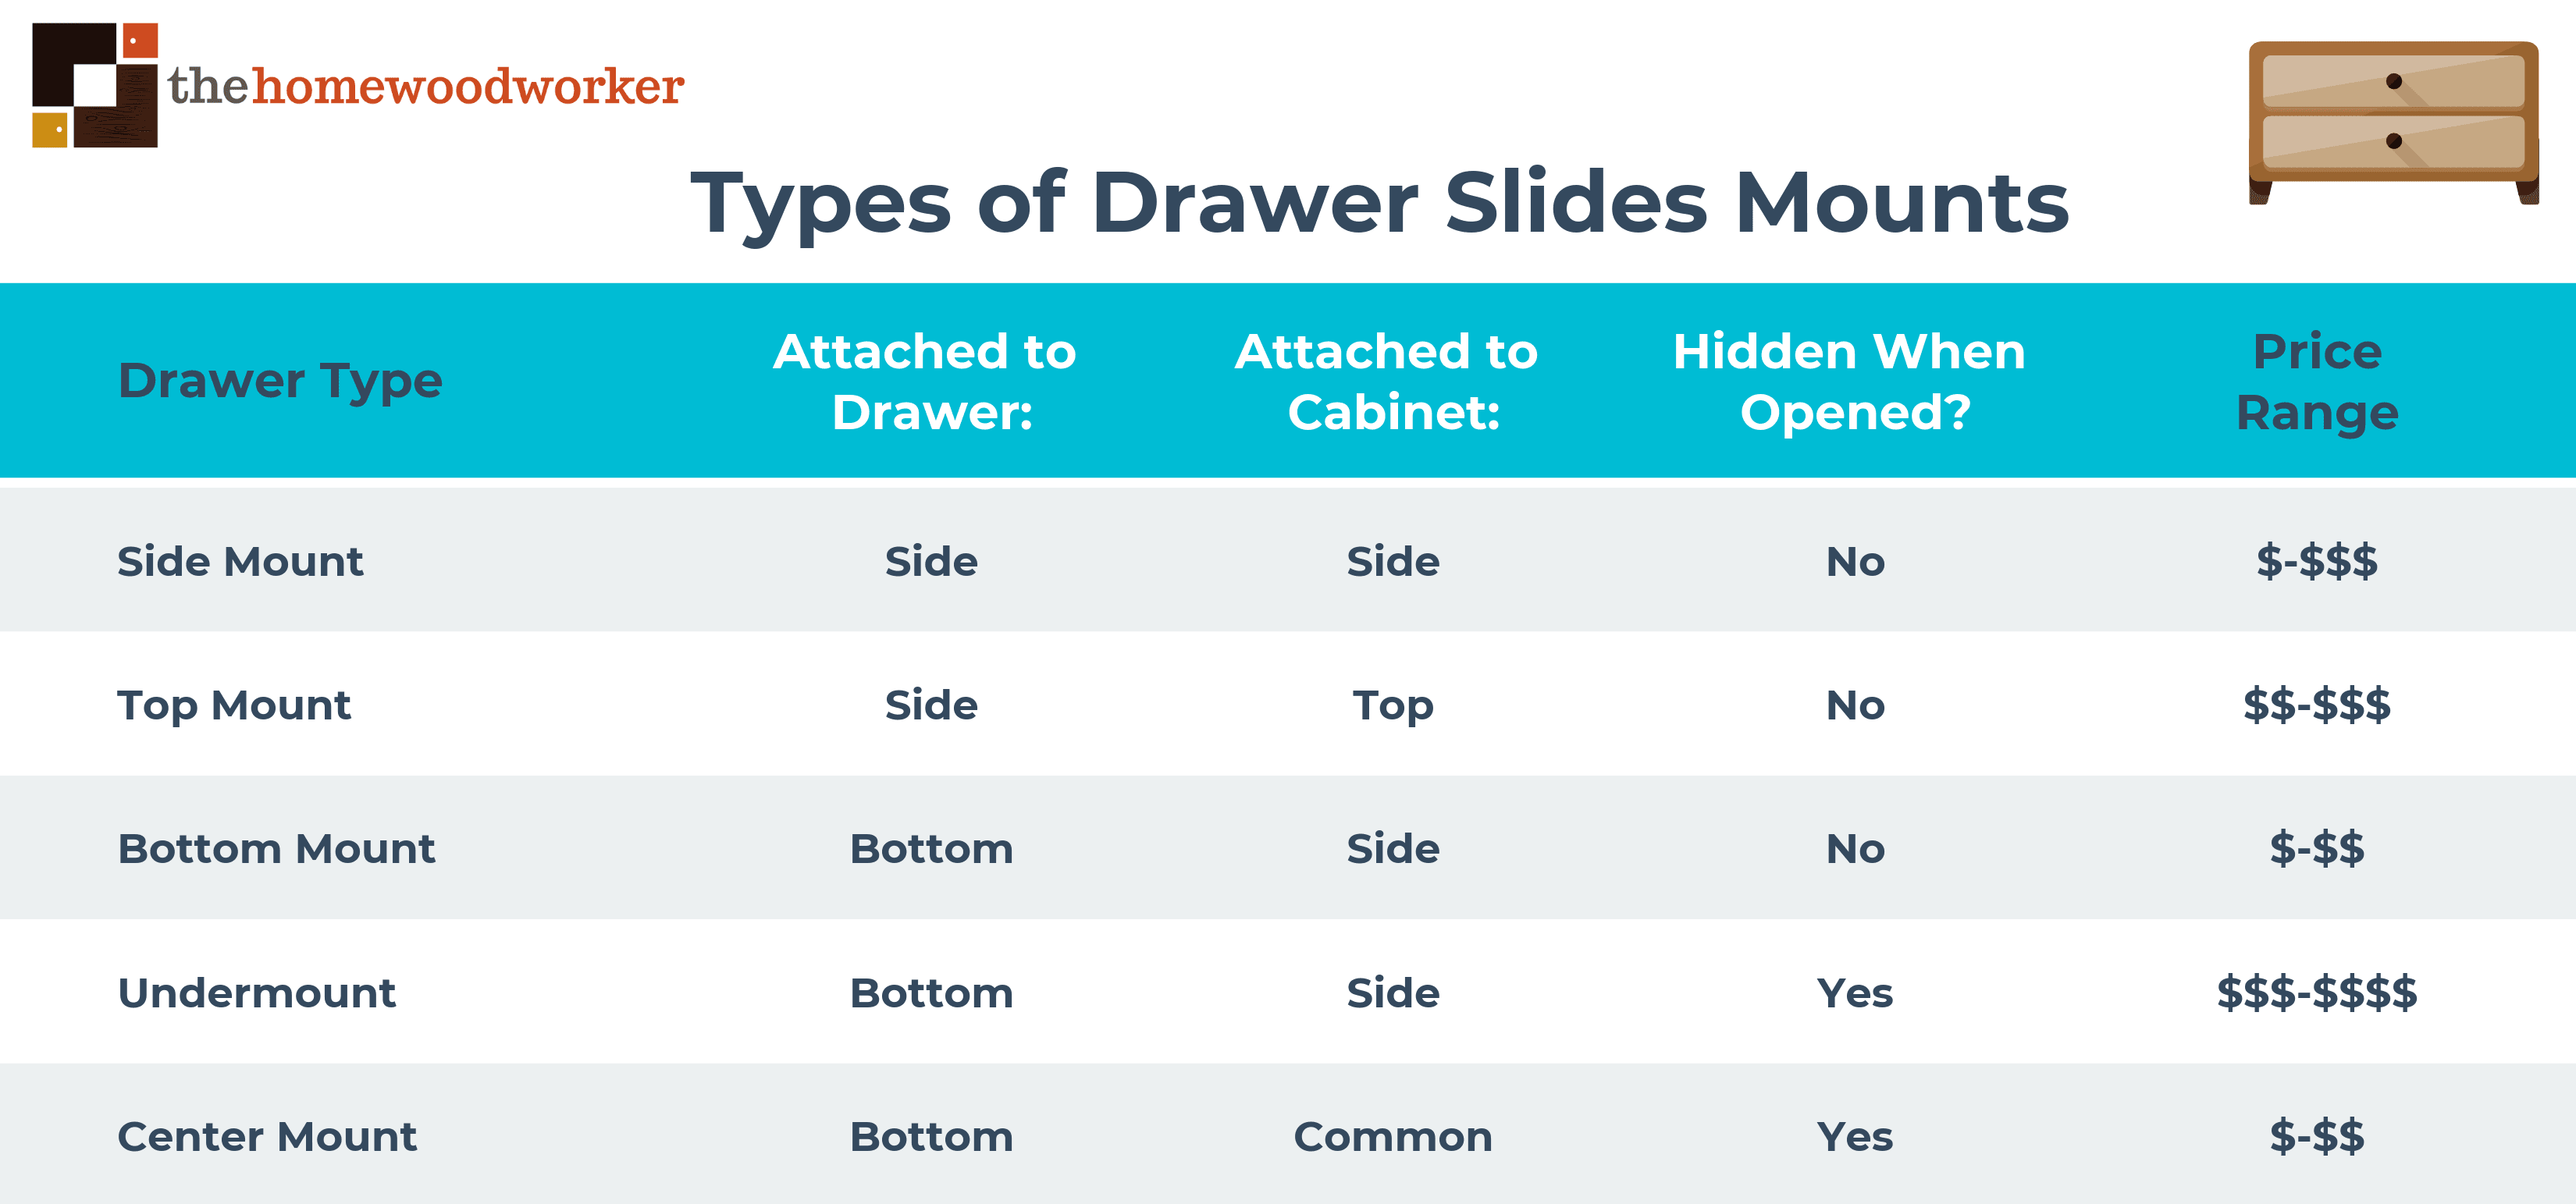 Types of Drawer Slides